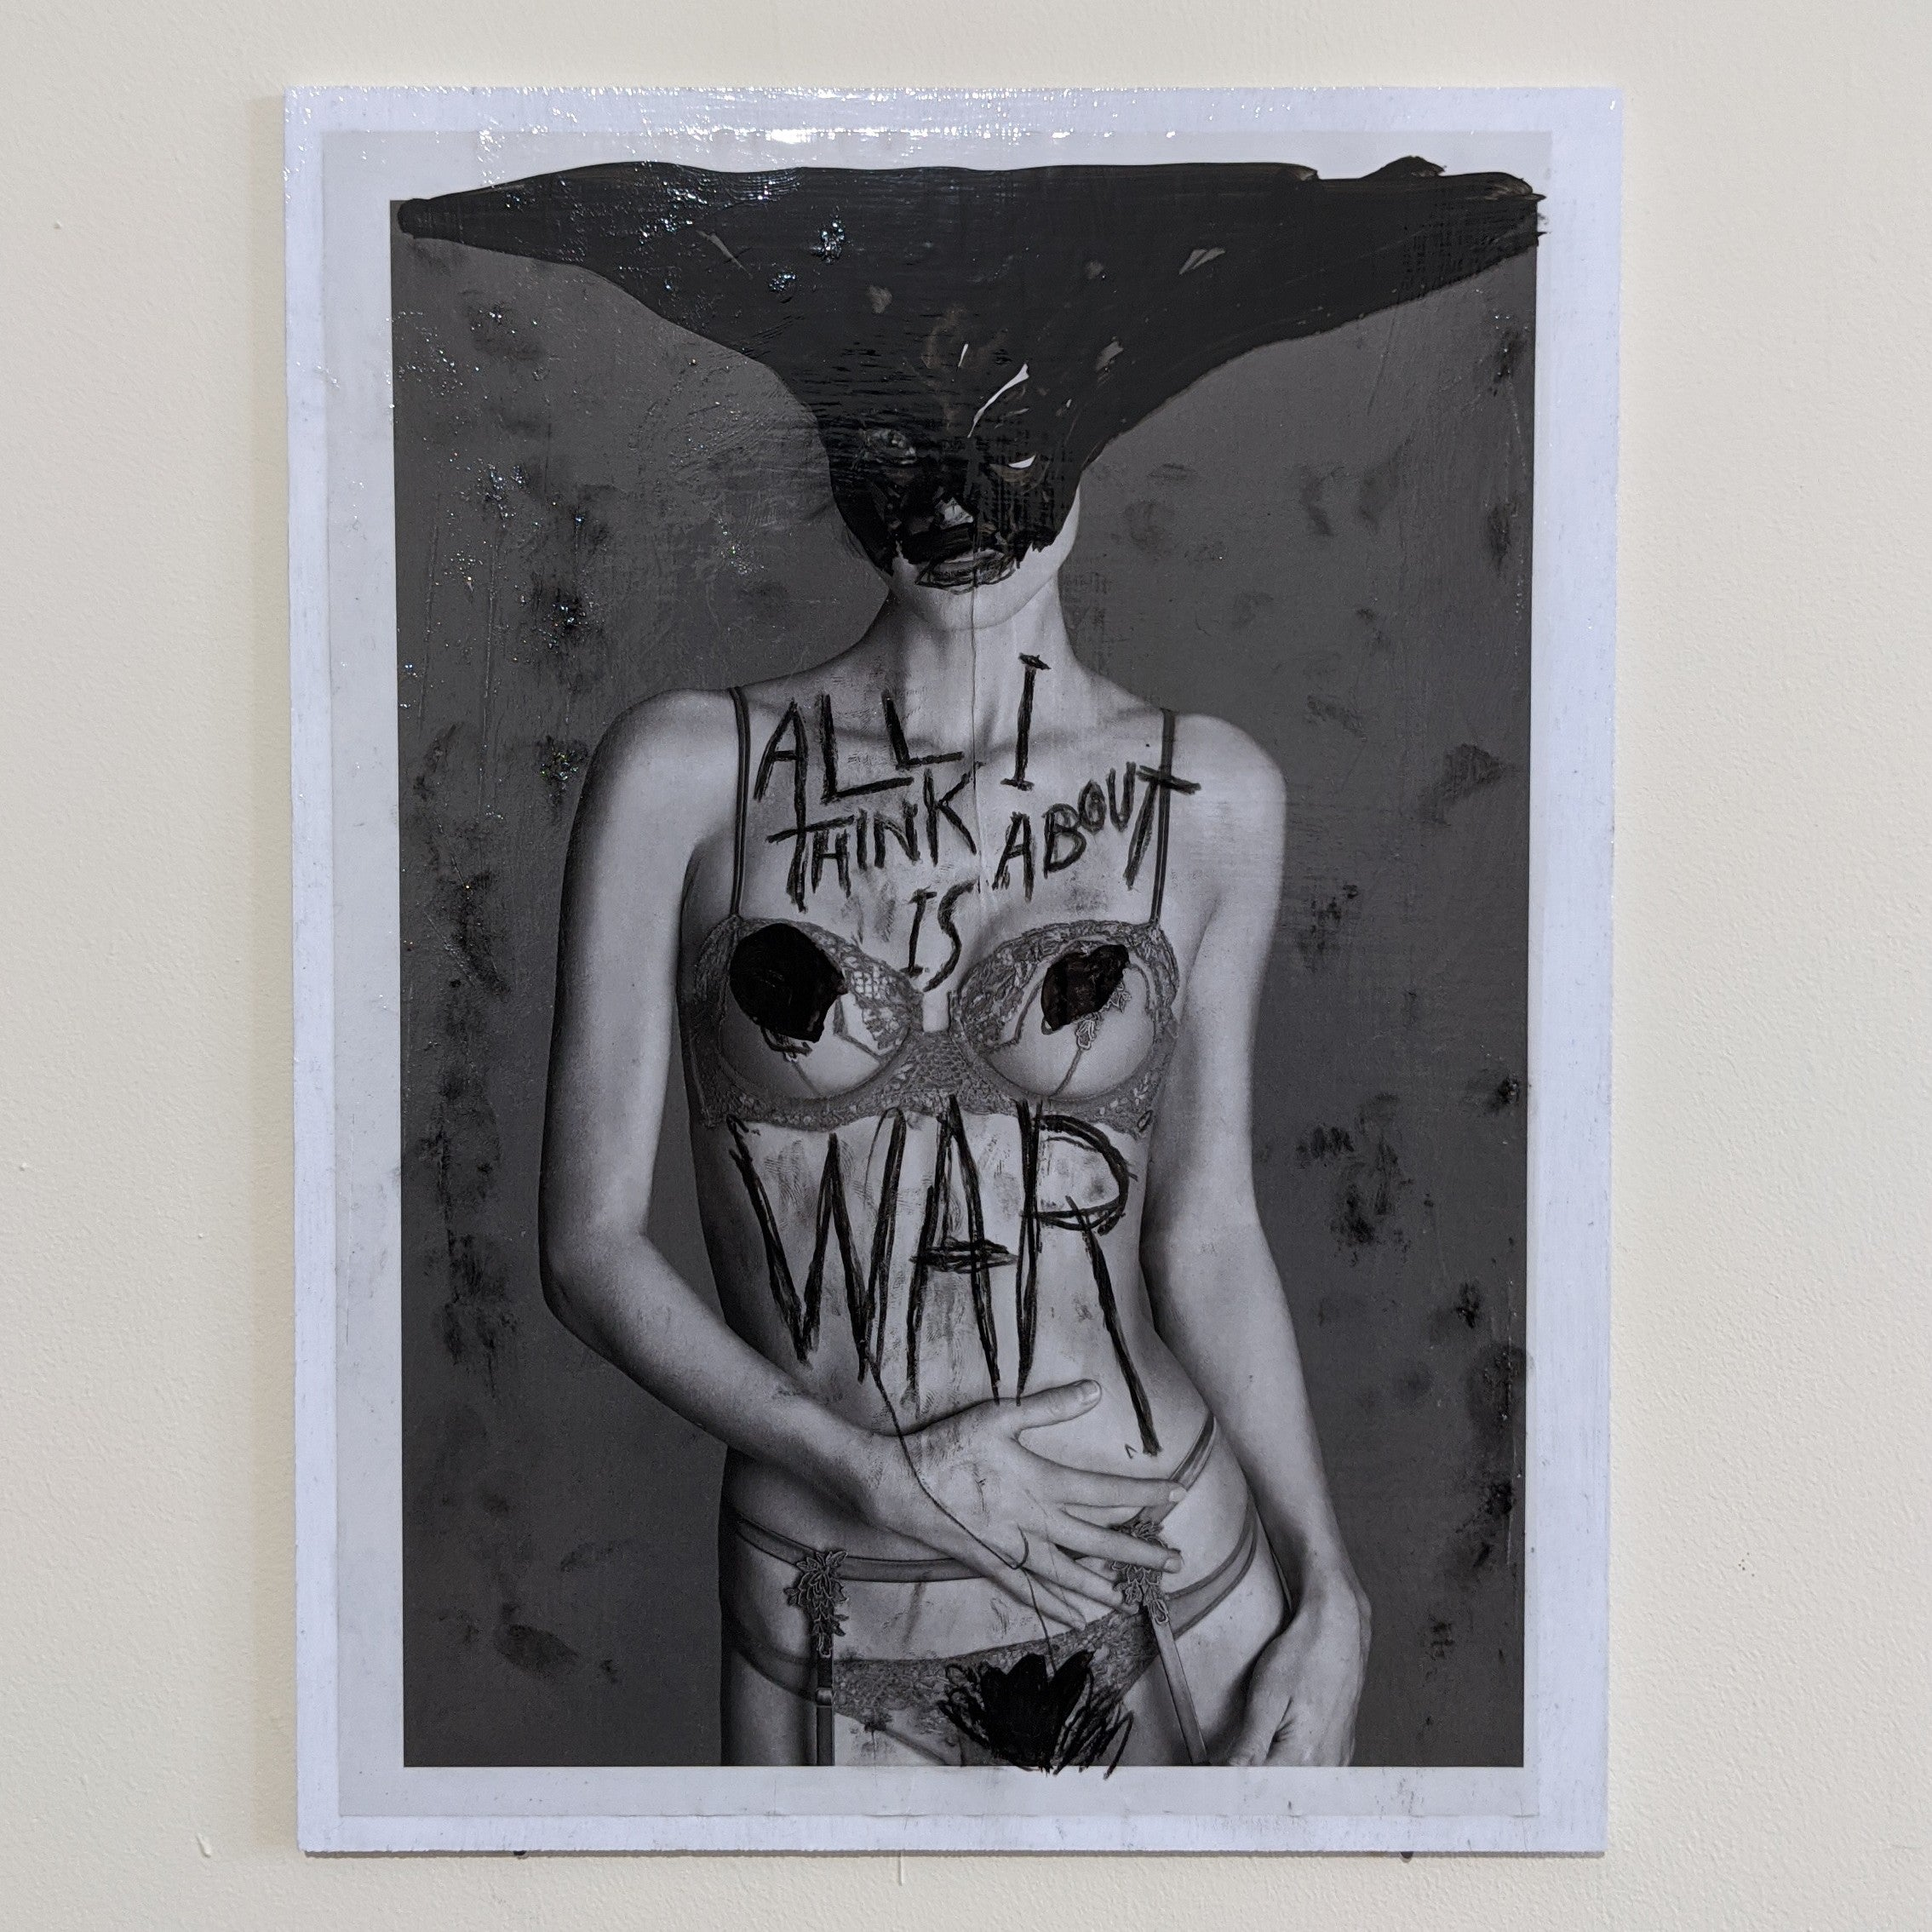 All I Think About Is War - mixed media on wood